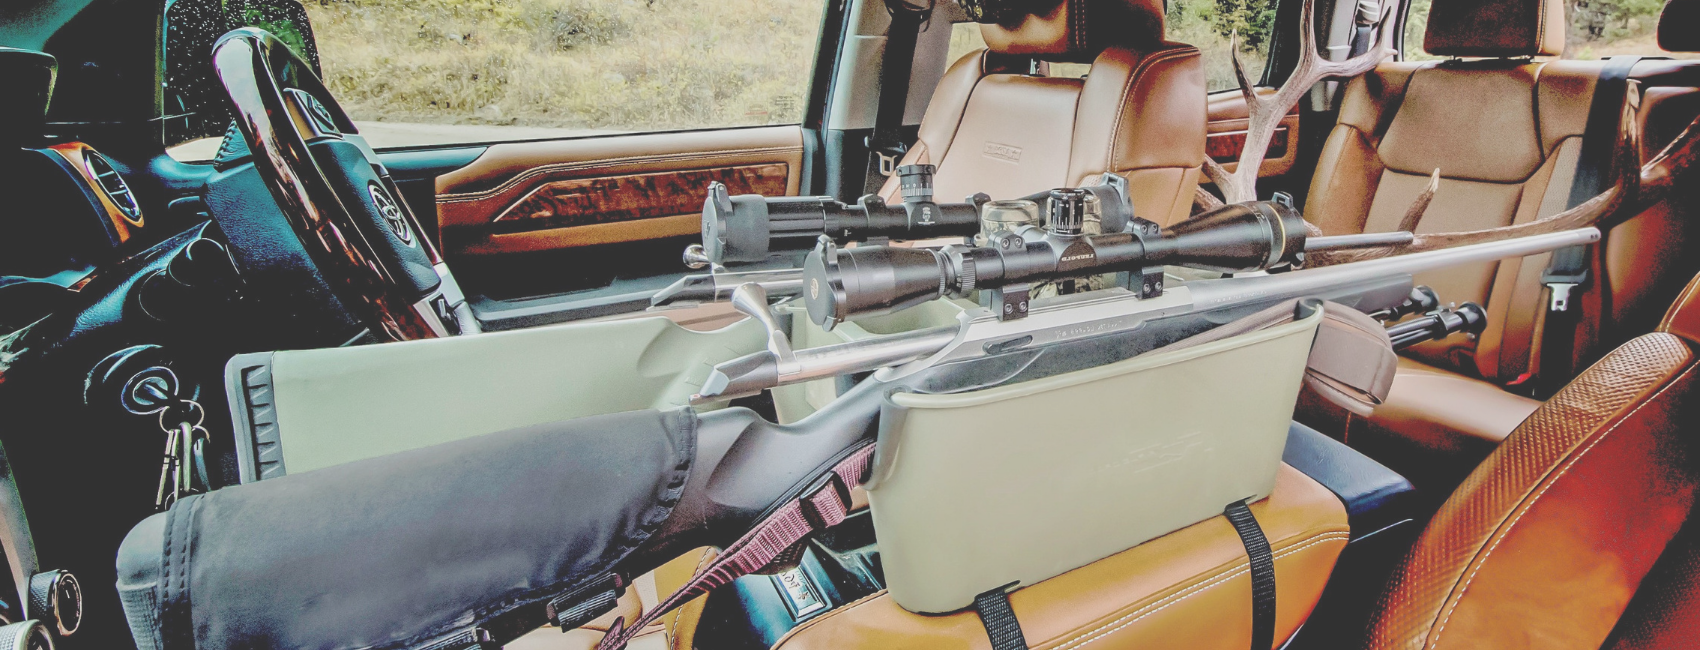 Rifle Caddy Center Console Firearms Holders For Vehicles Hunting Accessories